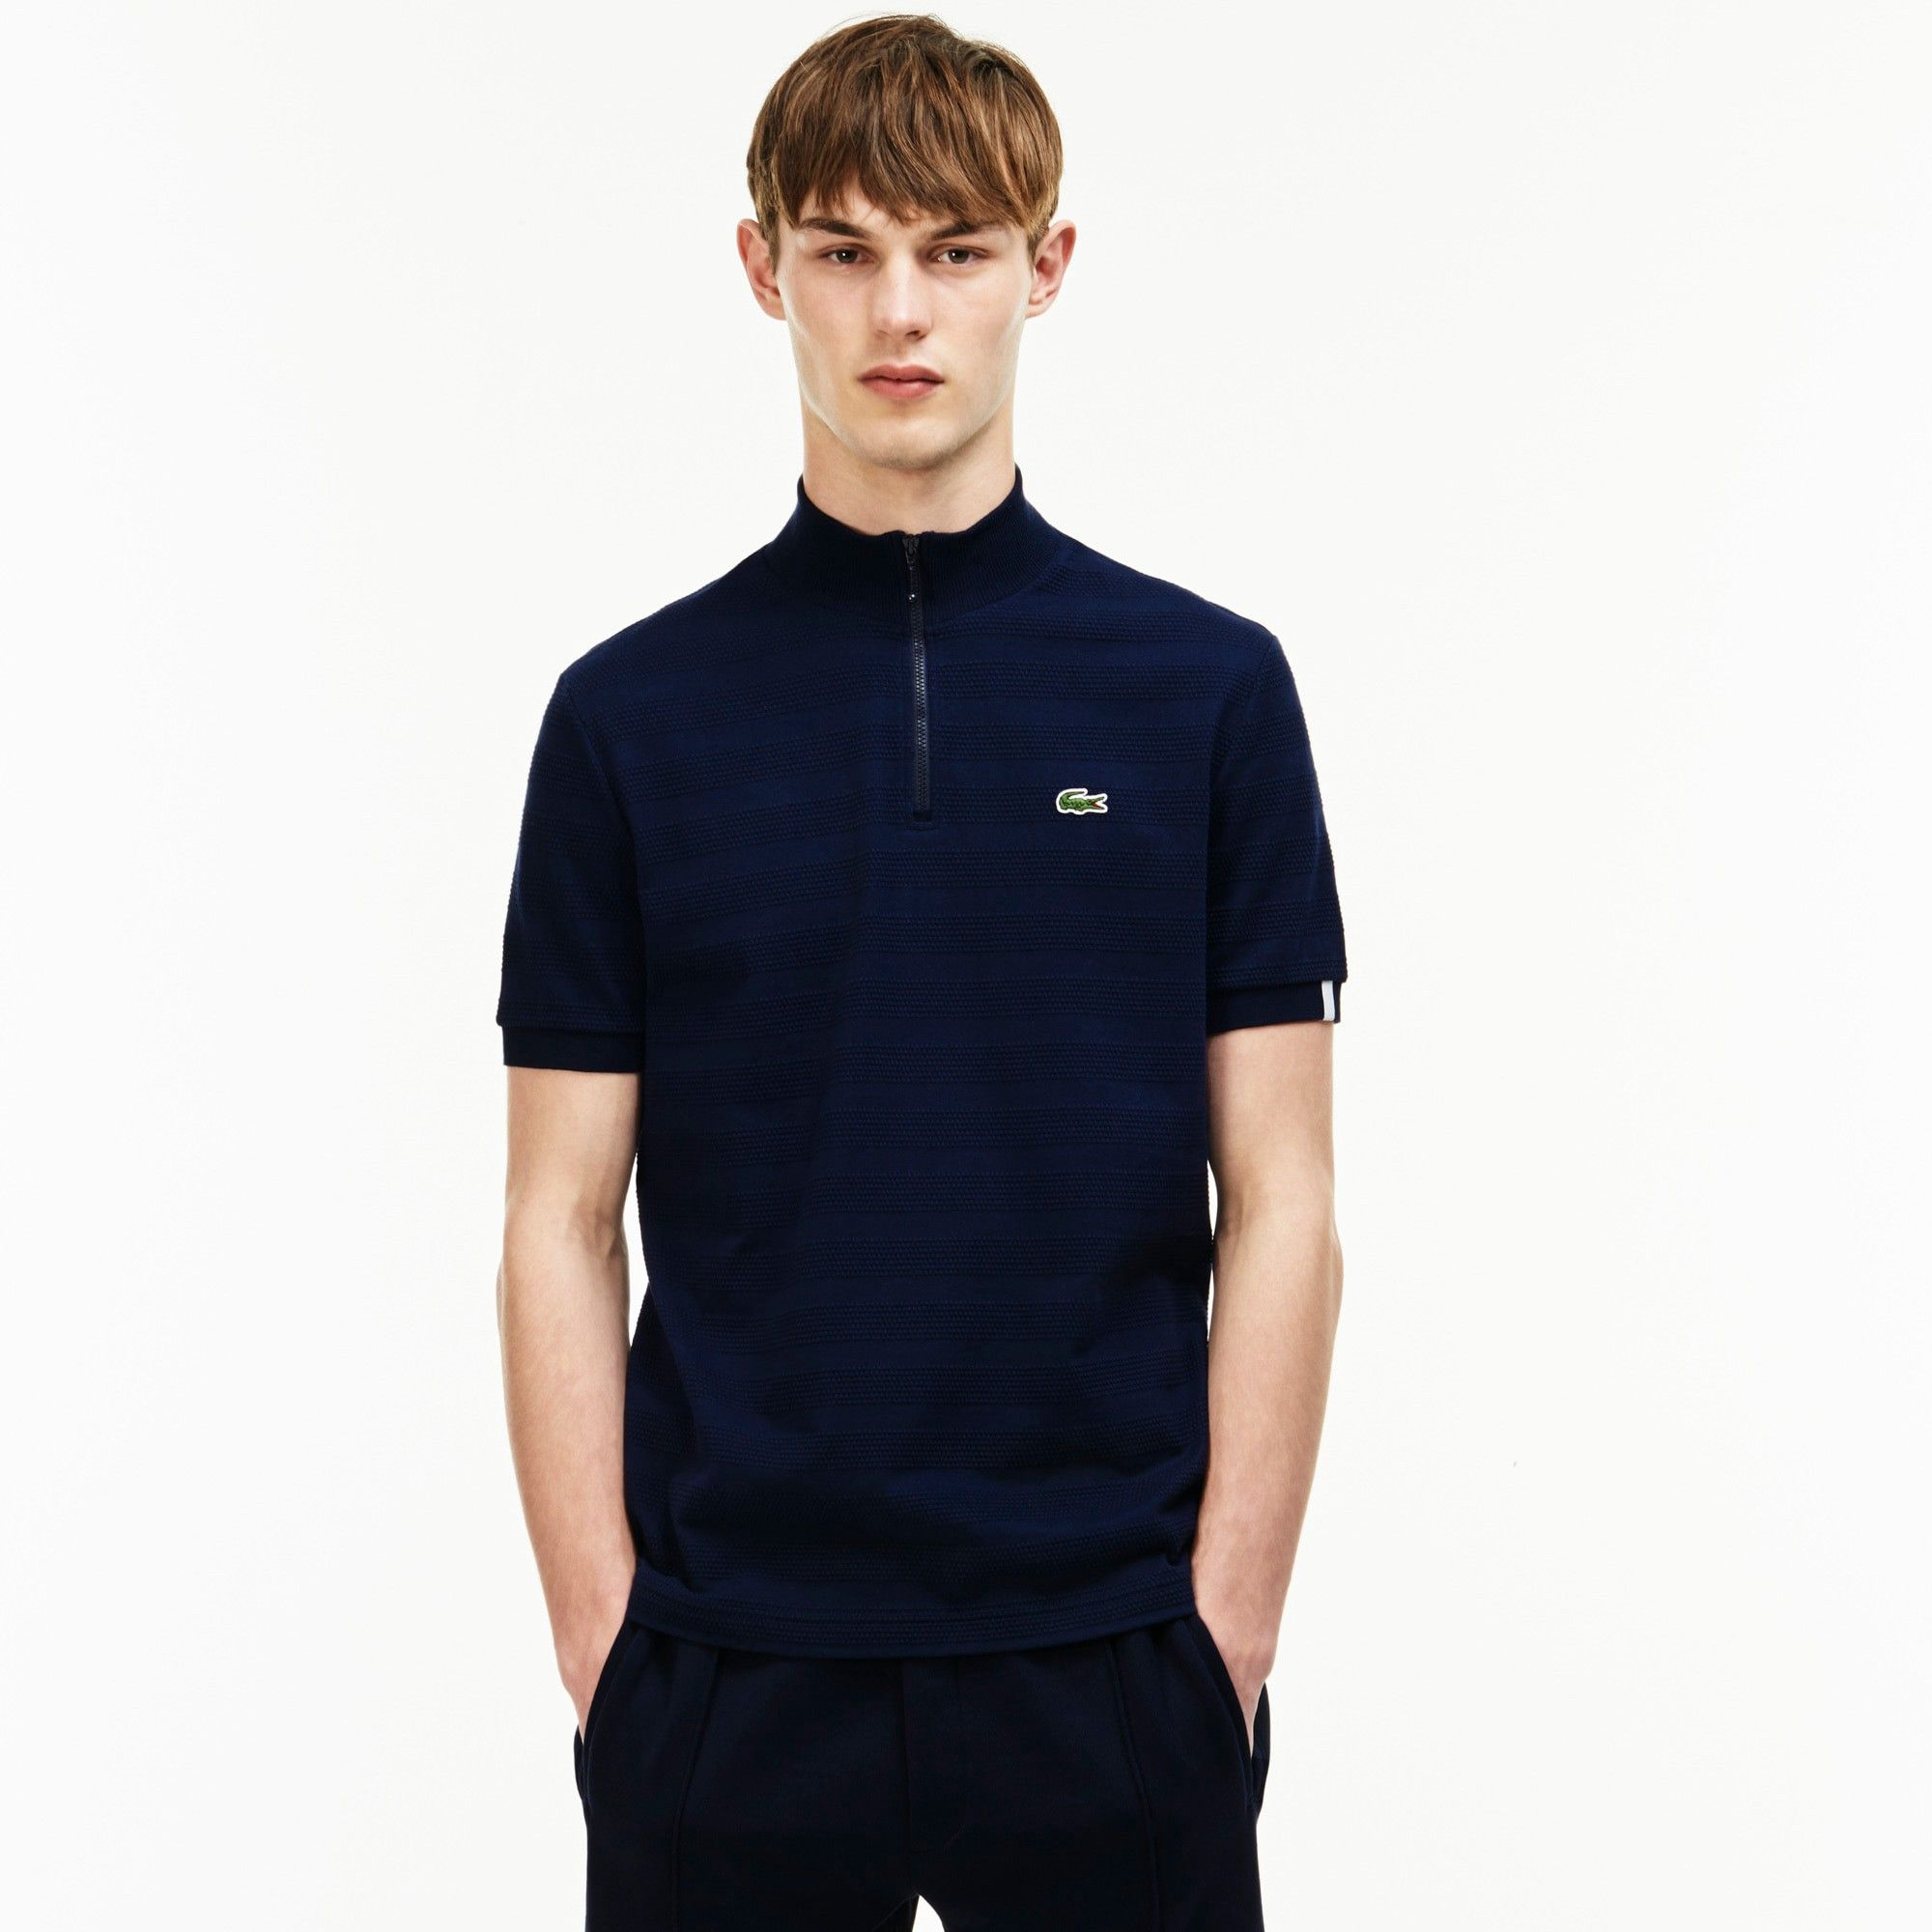 df8eec6dce2 LACOSTE Men s Lacoste LIVE Slim Fit Zip Striped Honeycomb Jersey Polo -  NAVY BLUENAVY BLUE.  lacoste  cloth